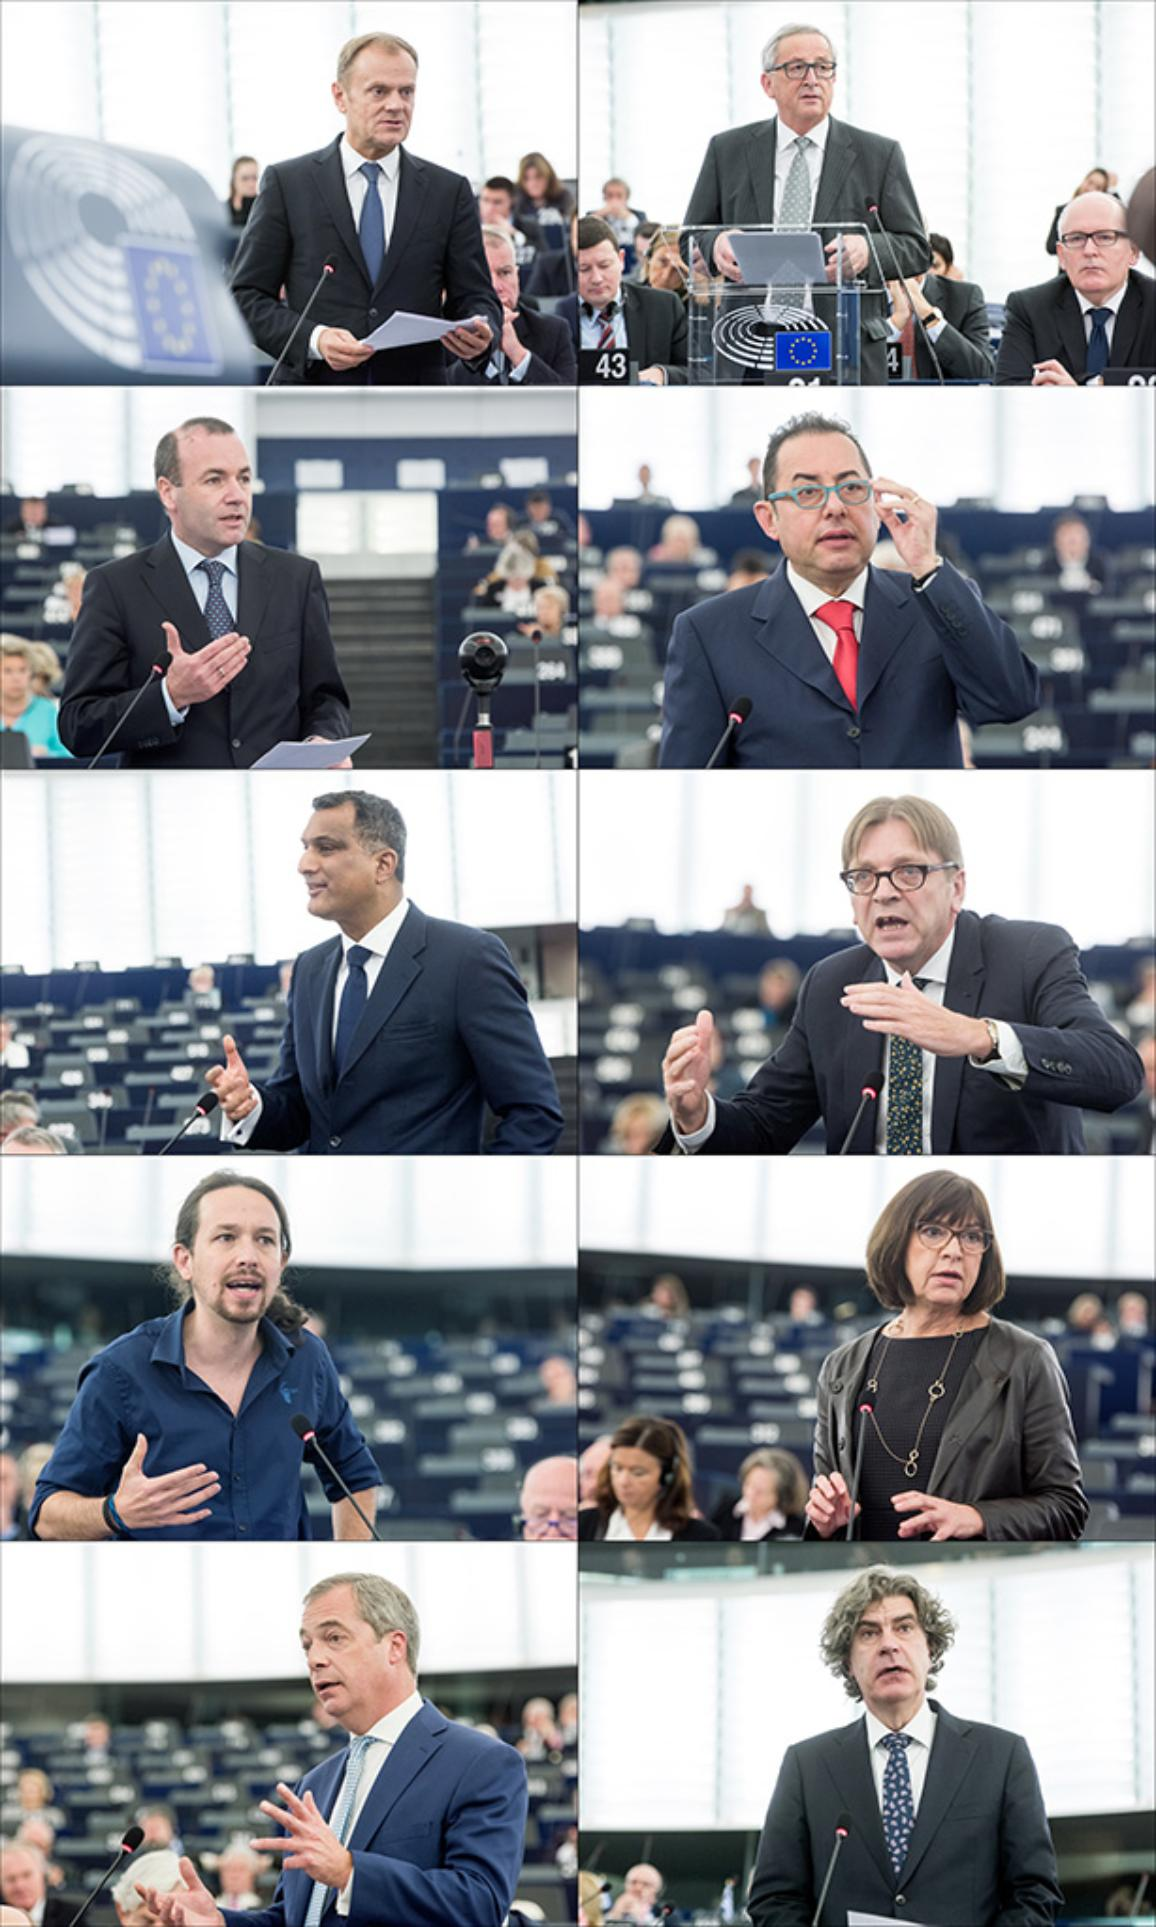 Migration: Debate on Turkey, Balkans, funds and borders with Tusk and Juncker